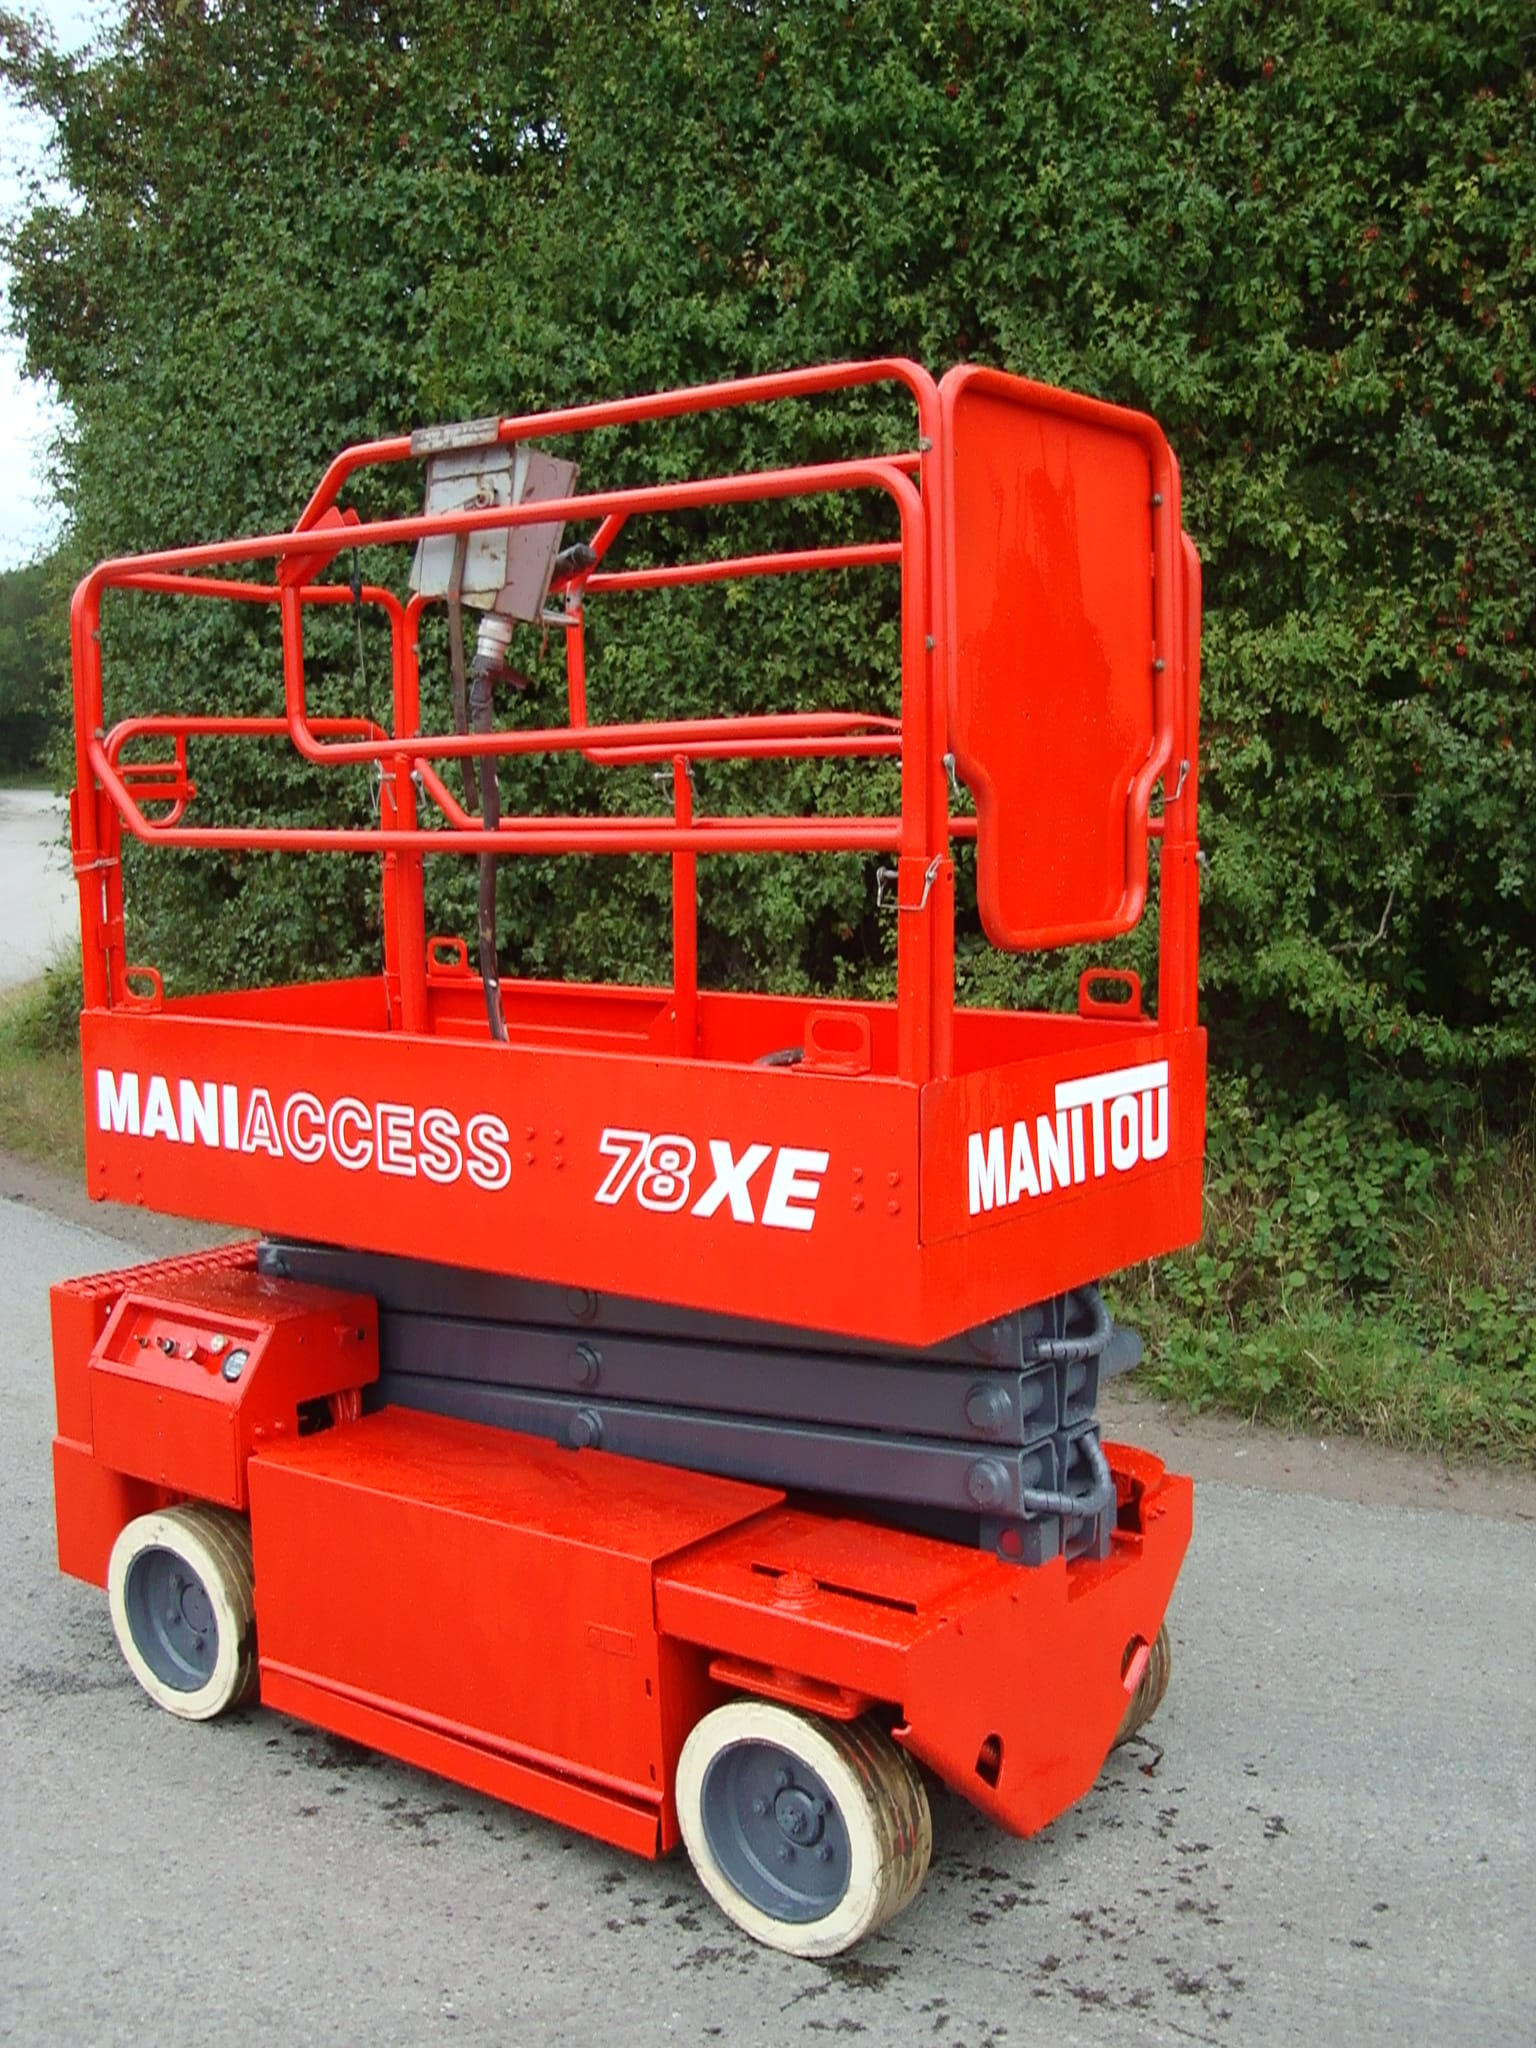 Manitou XE78-2 scissor lift in lowered position